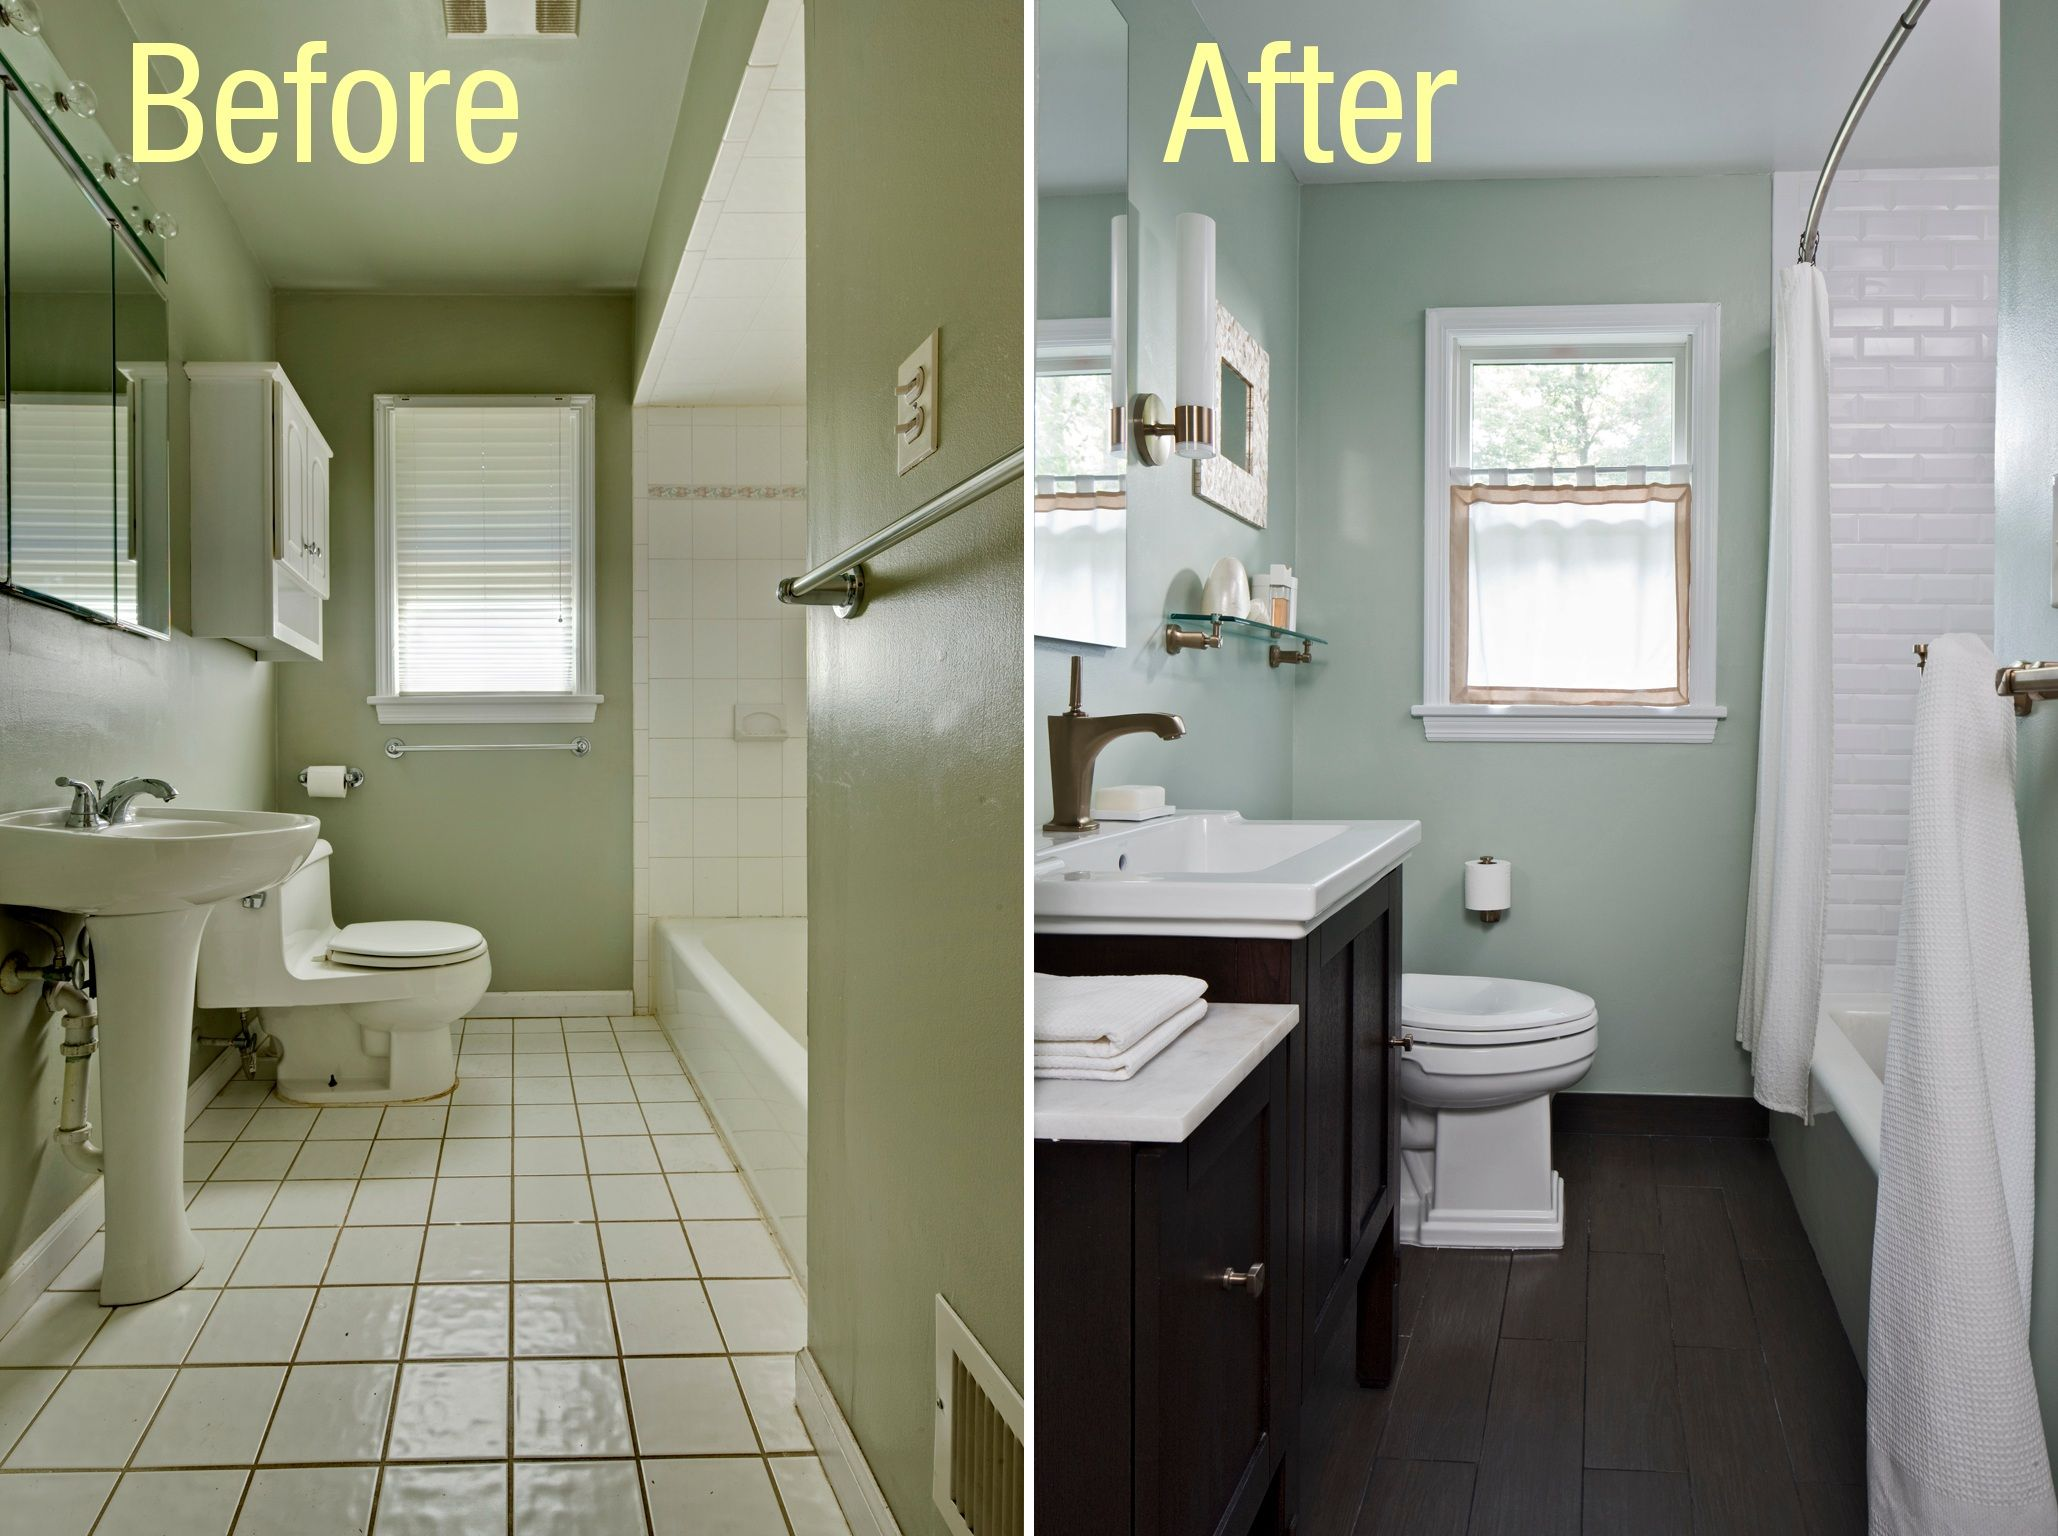 Remodeling A Small Bathroom On A Budget Bathrooms Budget Dark Floor Tiles Wooden Cabinets Also  Bathroom